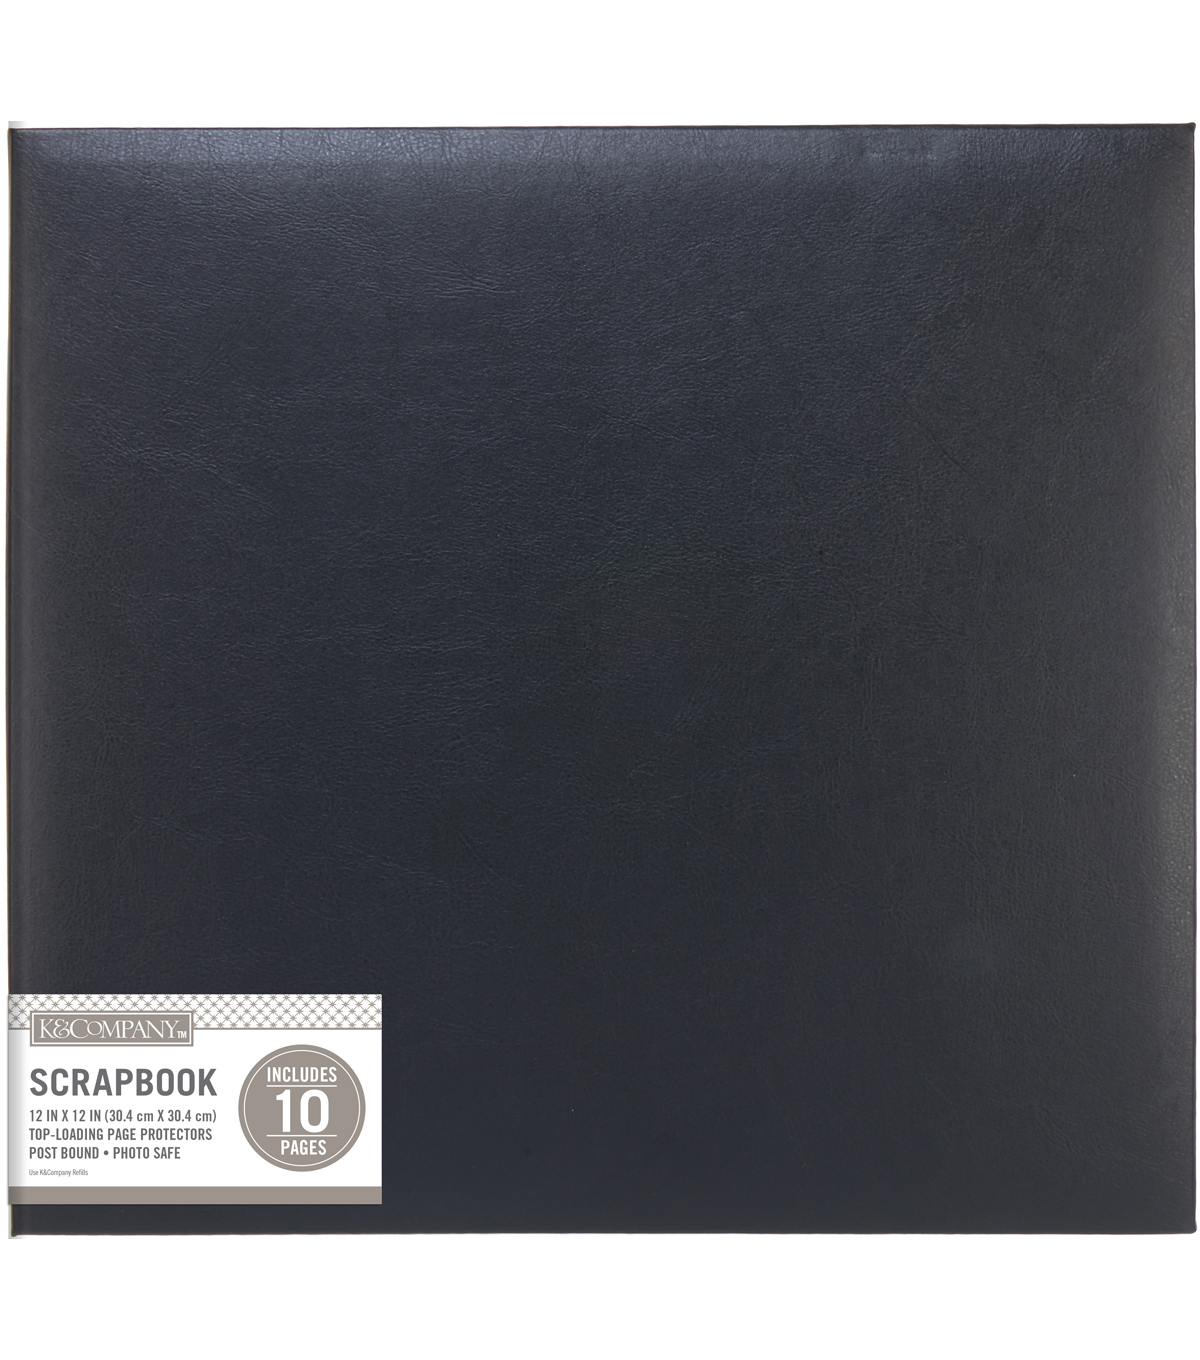 Kcompany Black Faux Leather 12x12 Basic Scrapbook Joann